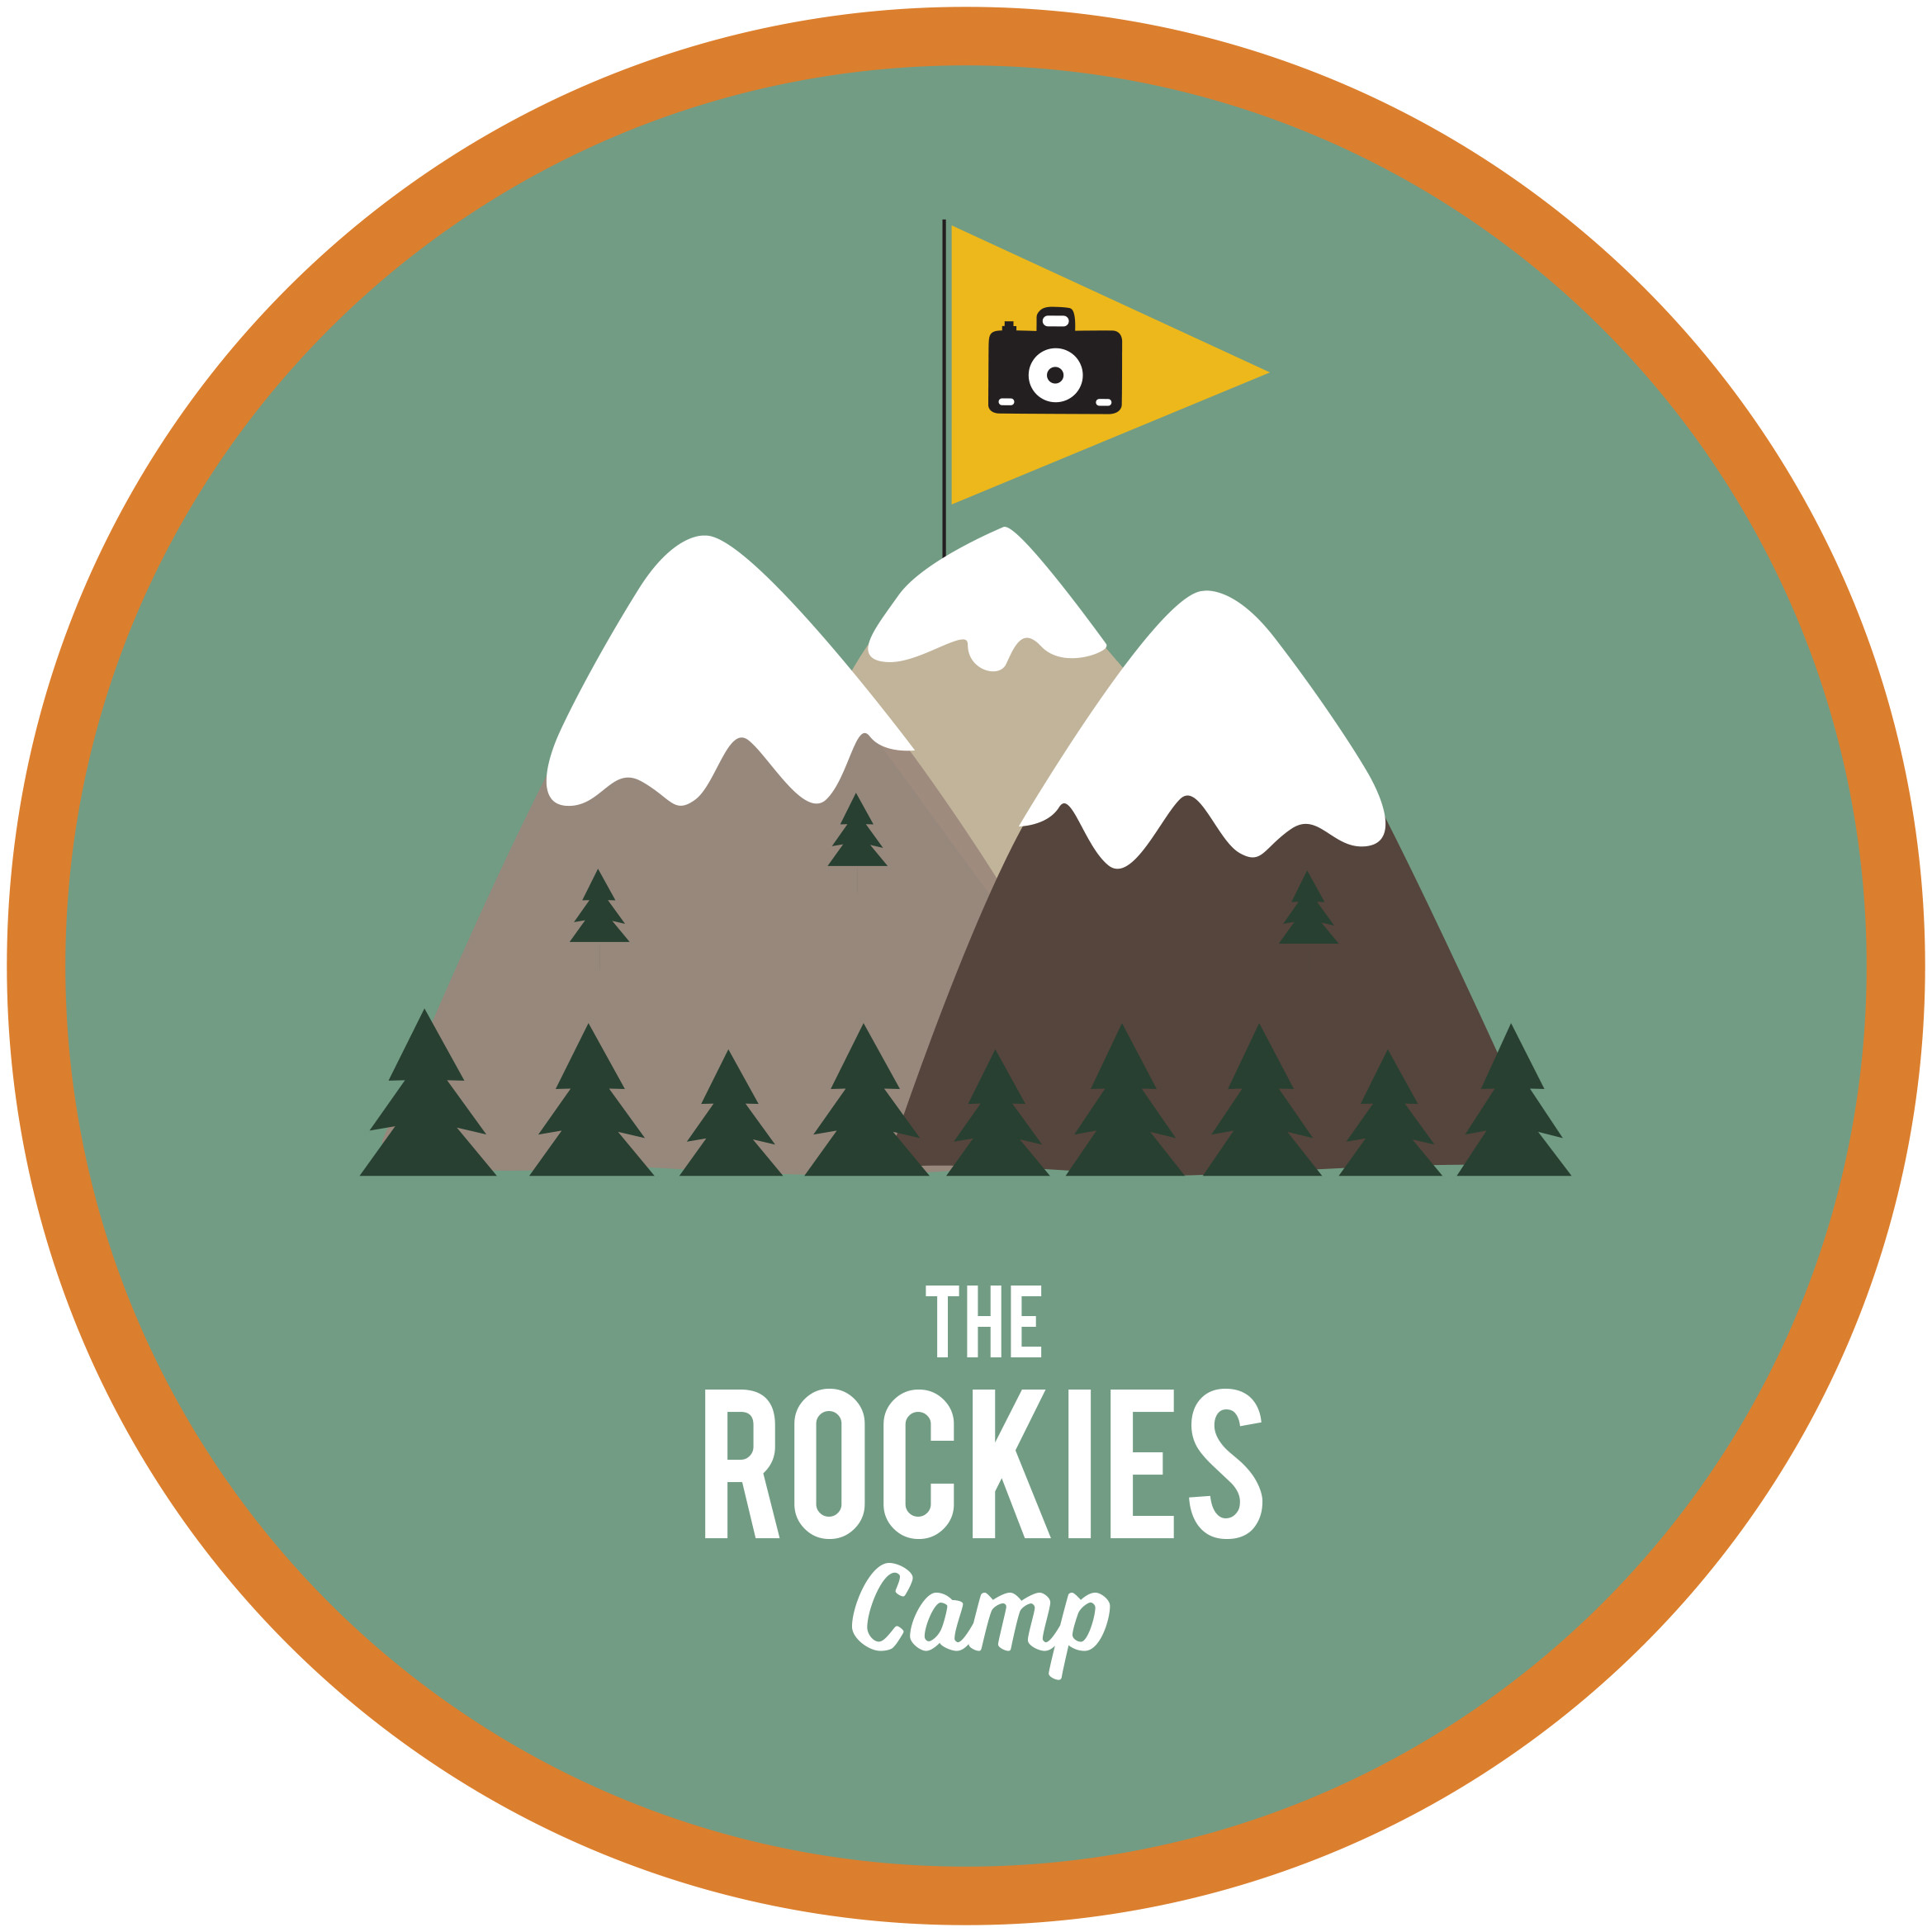 CampCollectiveButtons+Badges_Rockies.jpg